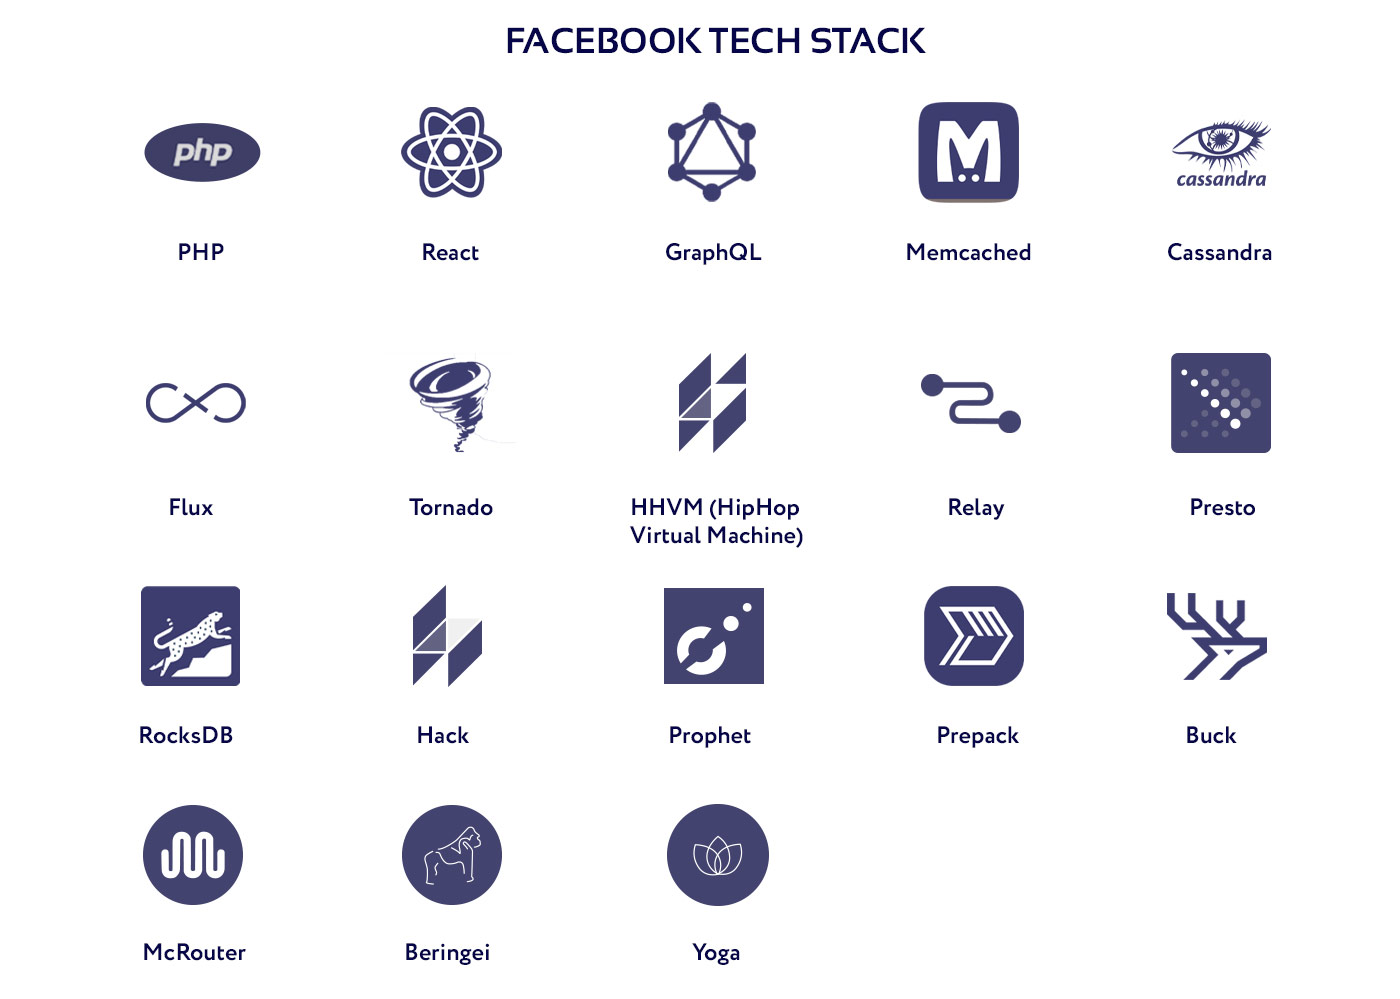 Diagram of the technology stack used by Facebook